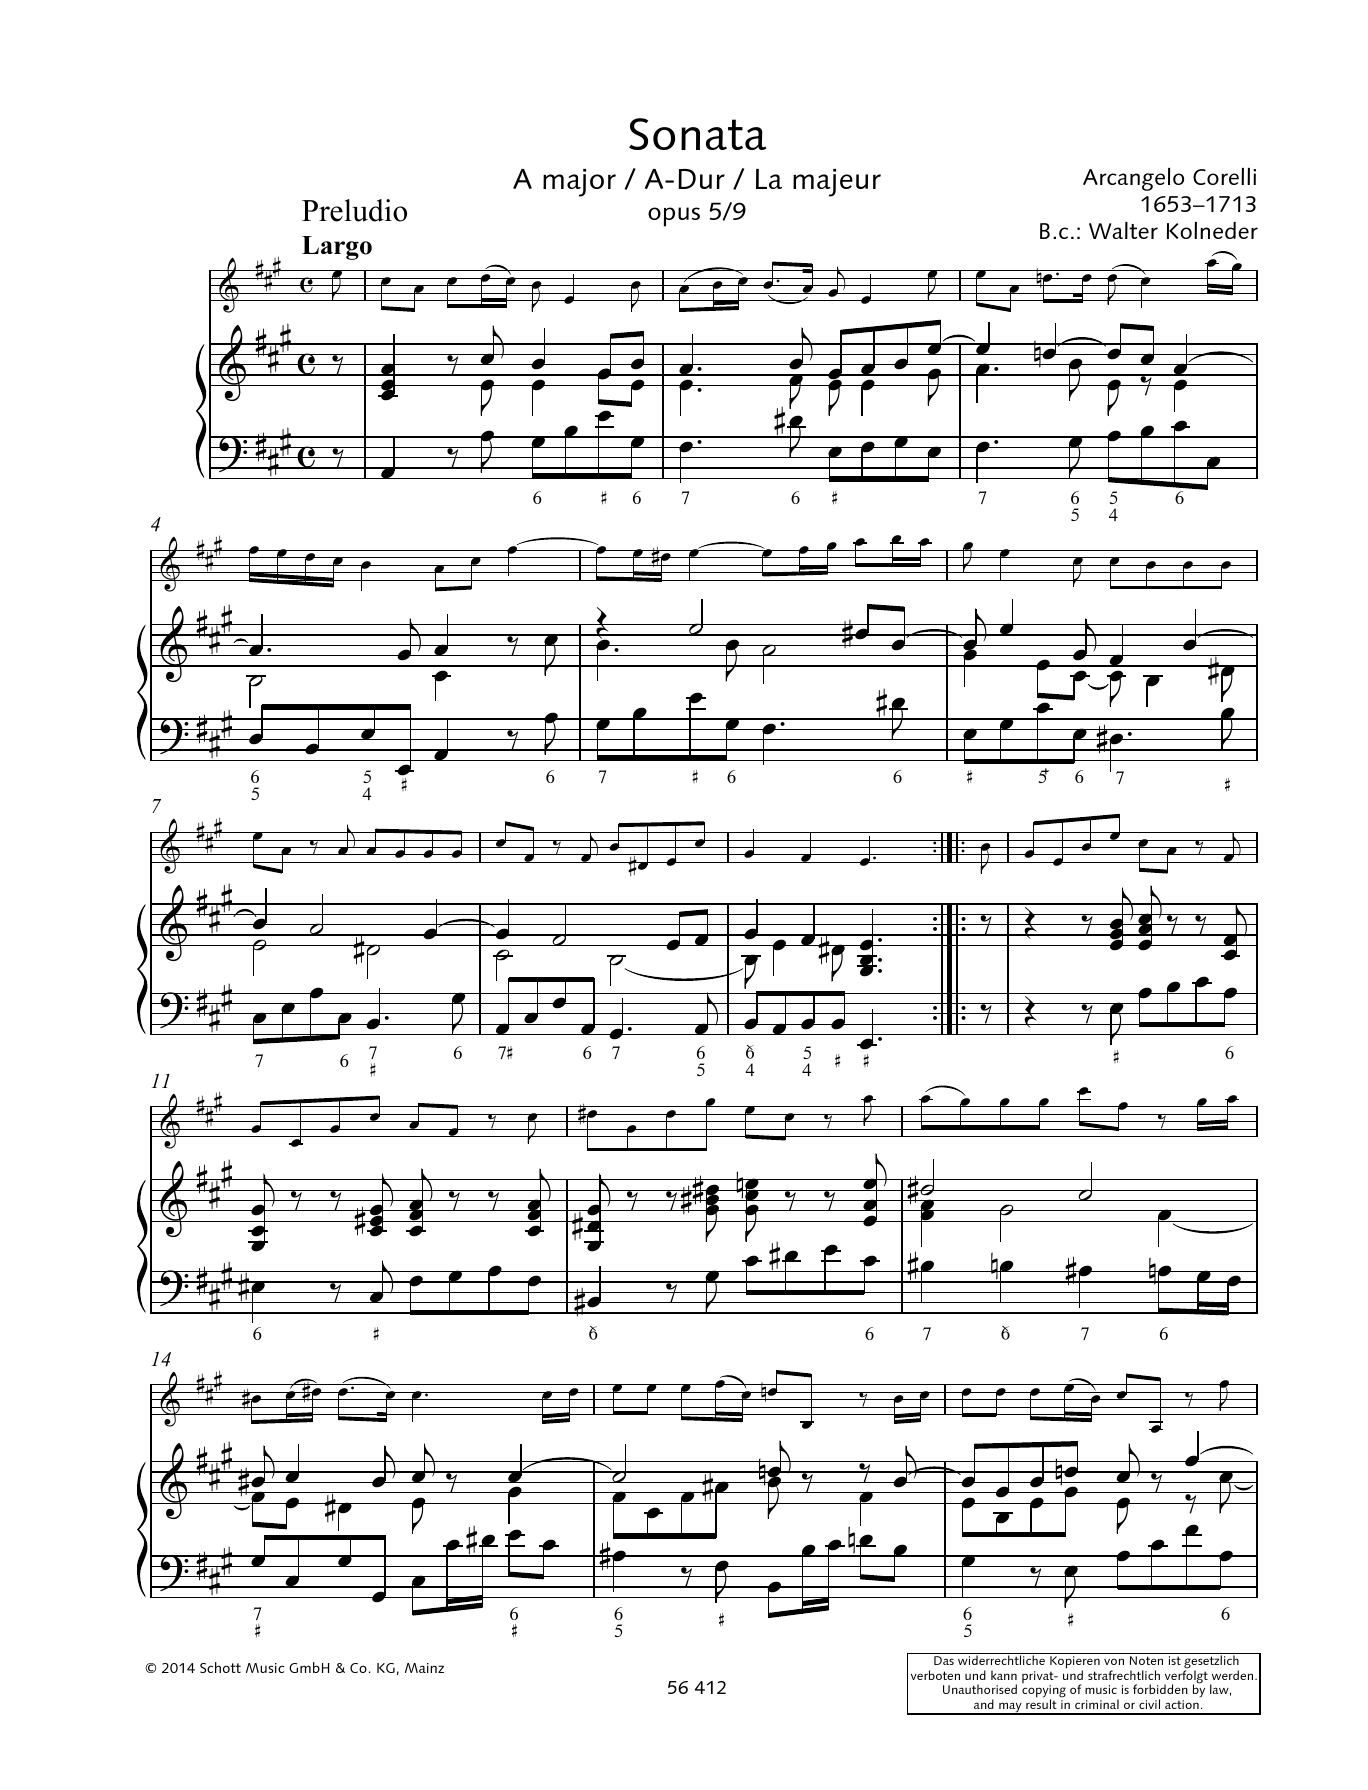 Sonata A Major Sheet Music